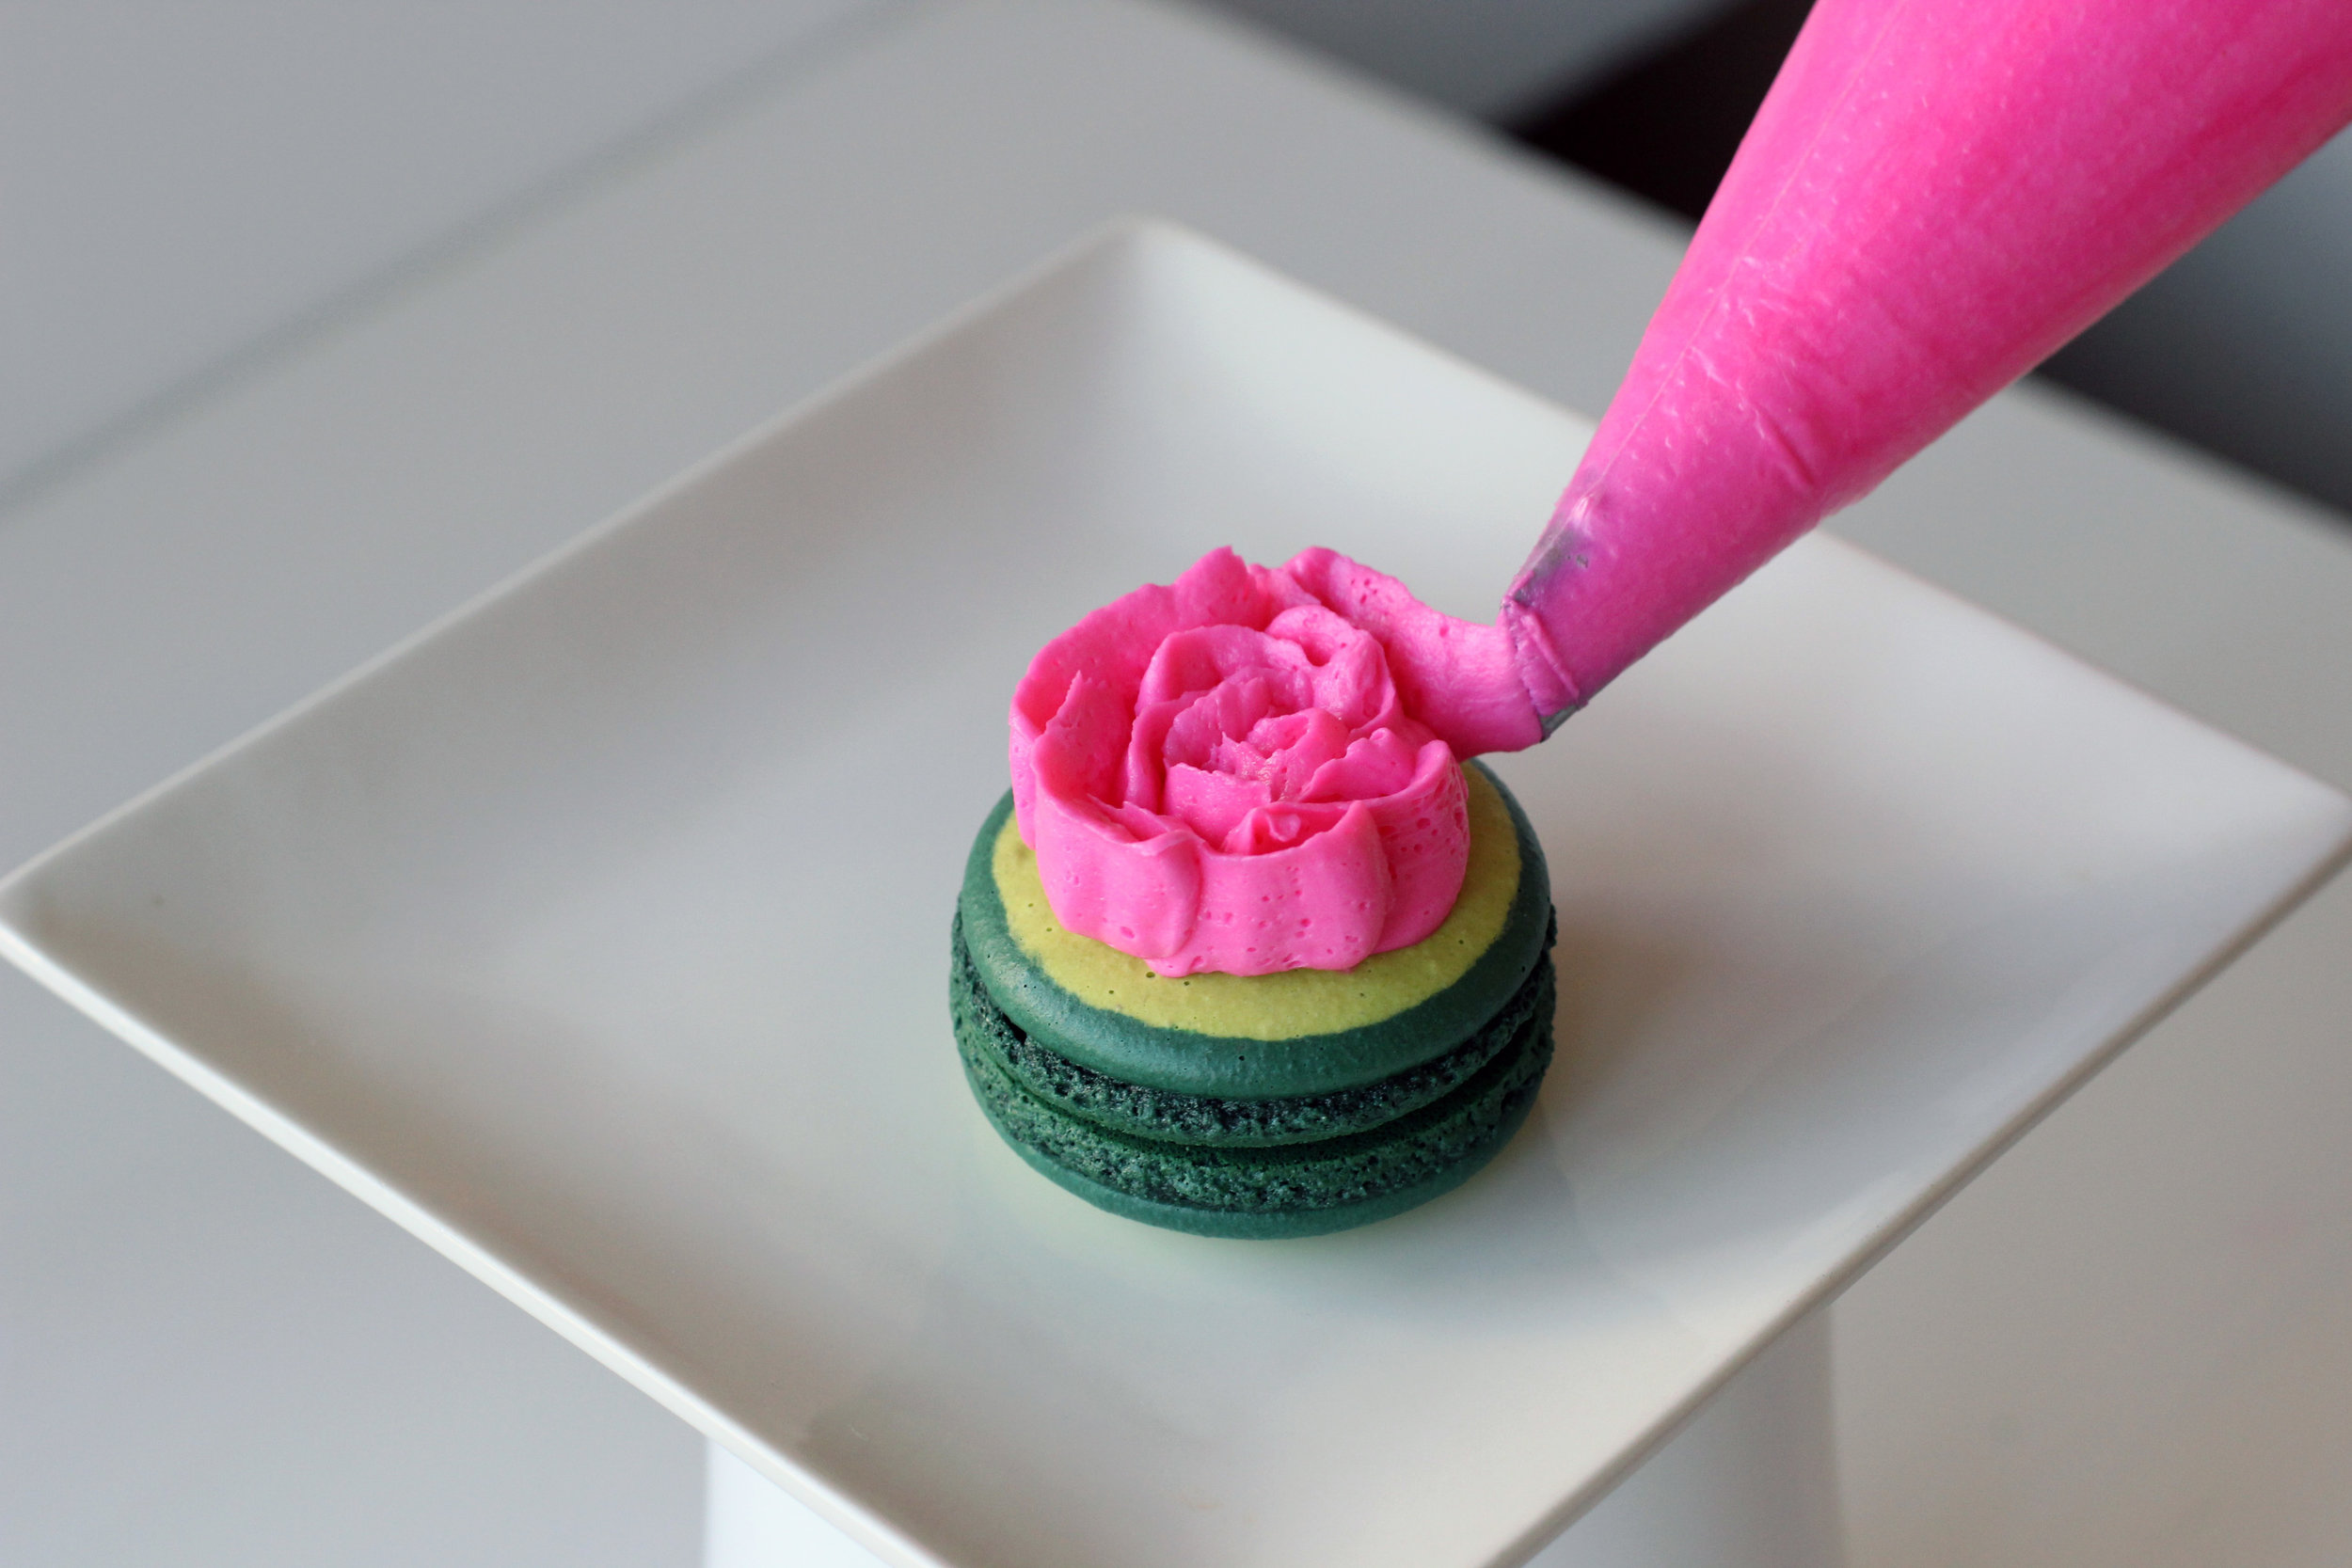 Step 2: Garnish macarons with buttercream roses.